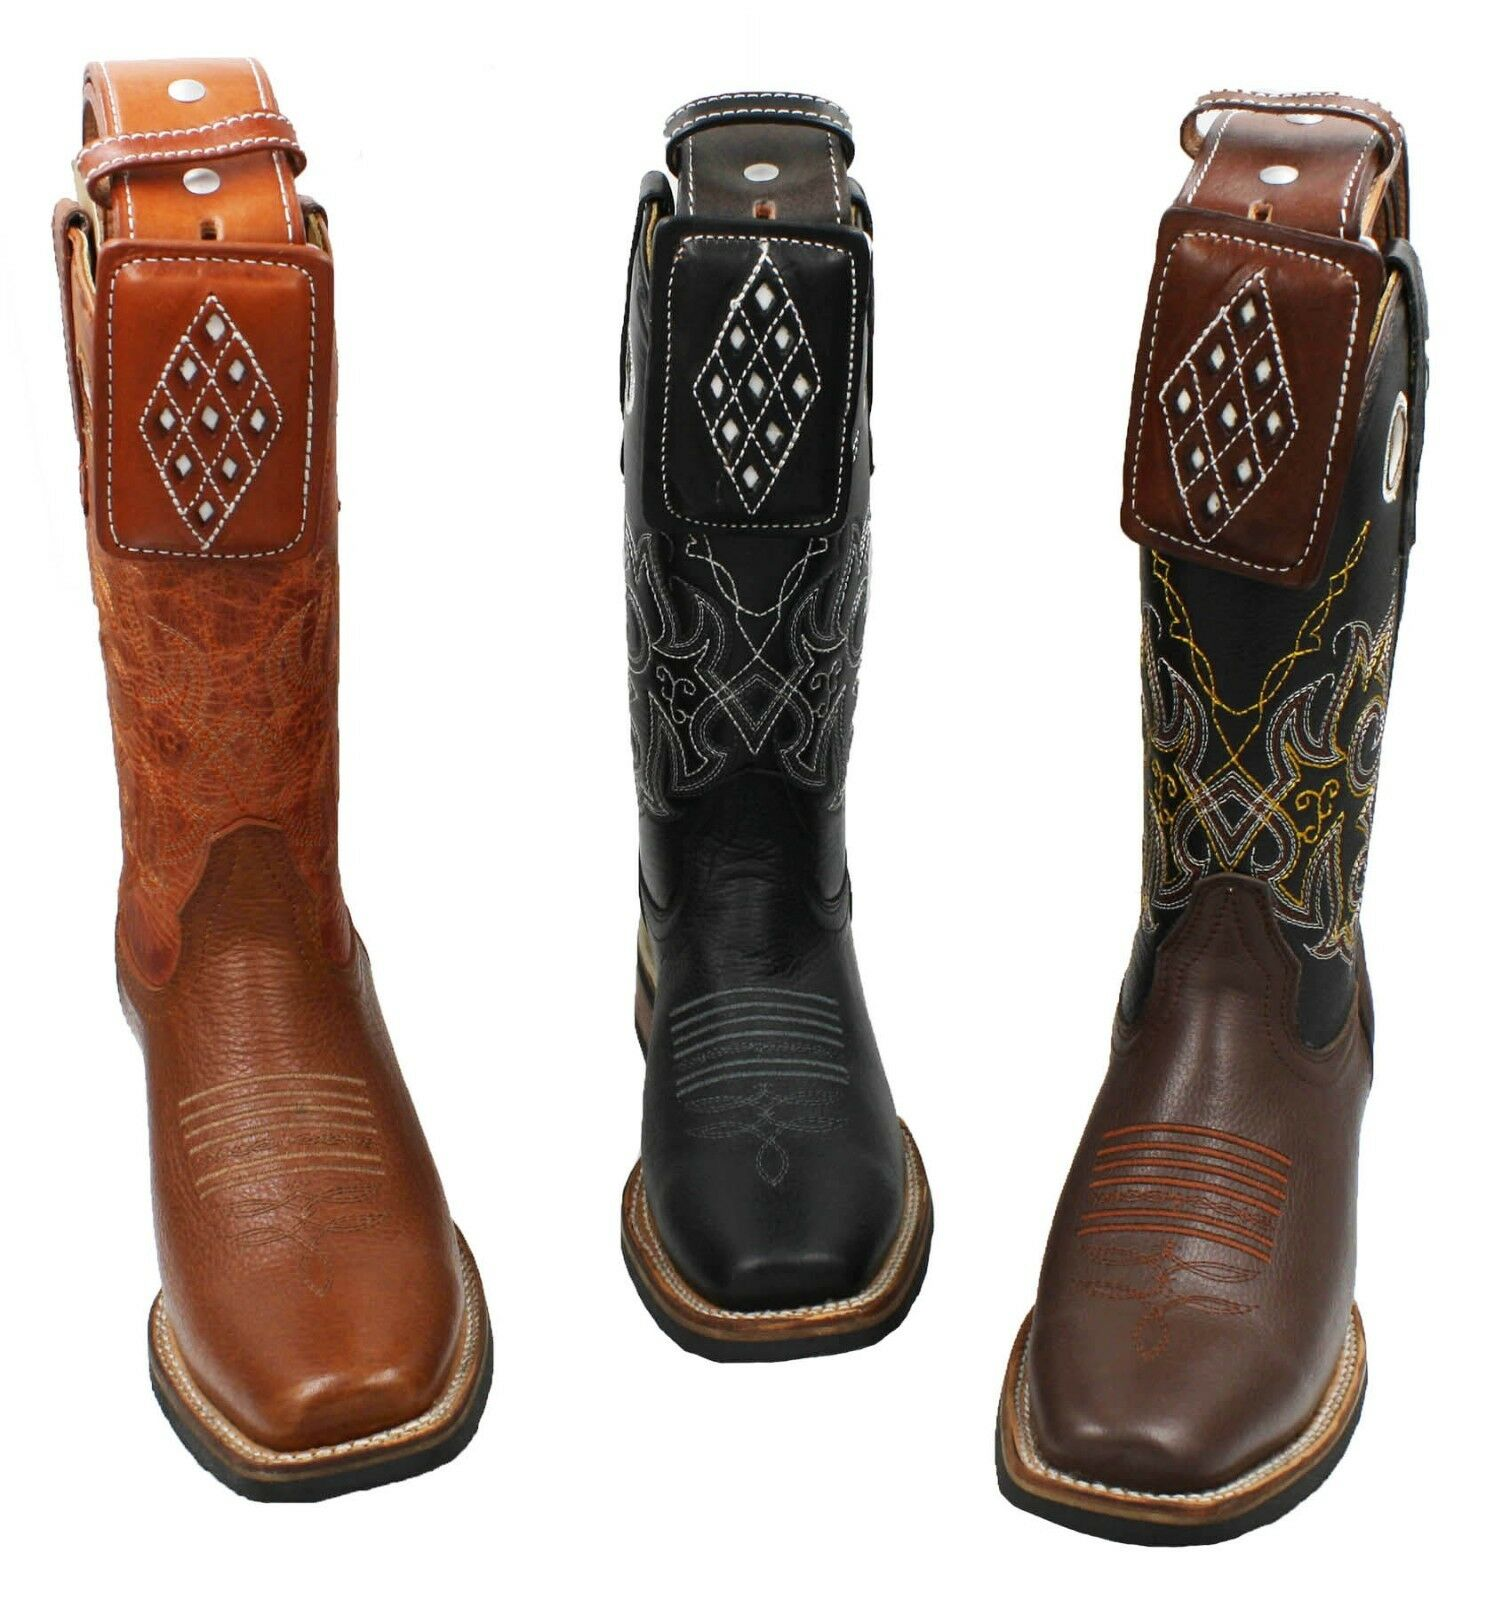 uomo Genuine Cowhide Rodeo Leather Cowboy Boots With Free Belt -Floter Scarpe classiche da uomo